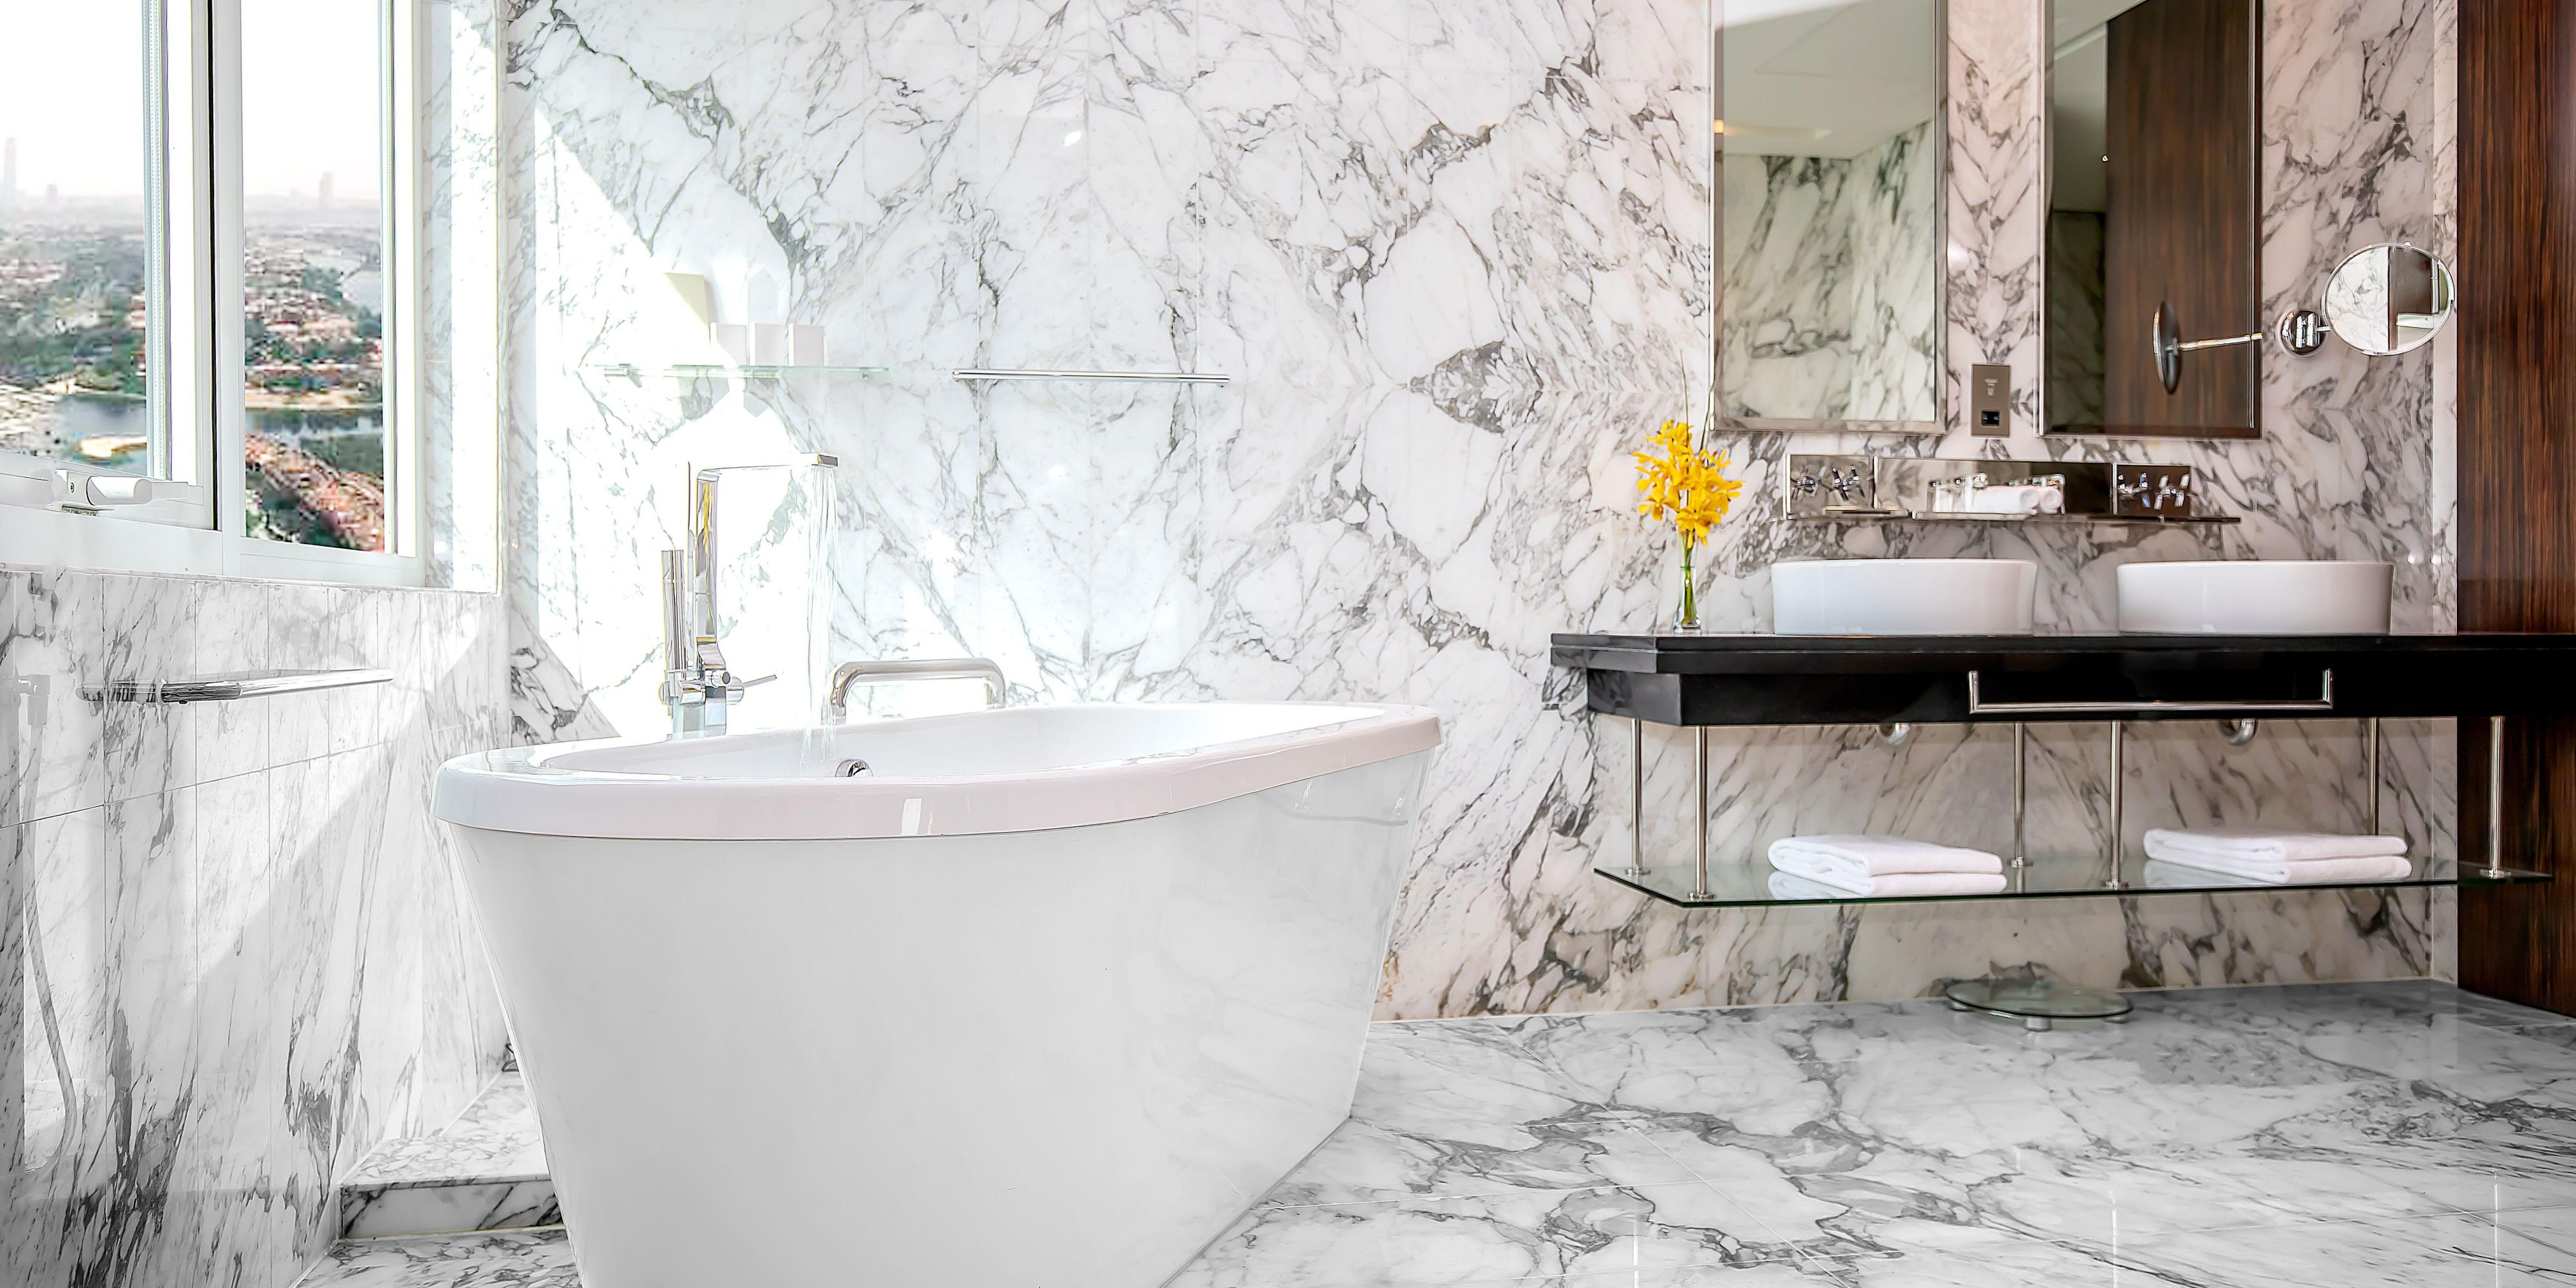 Stand-alone bathtub and double-vanity area of the Deluxe suite